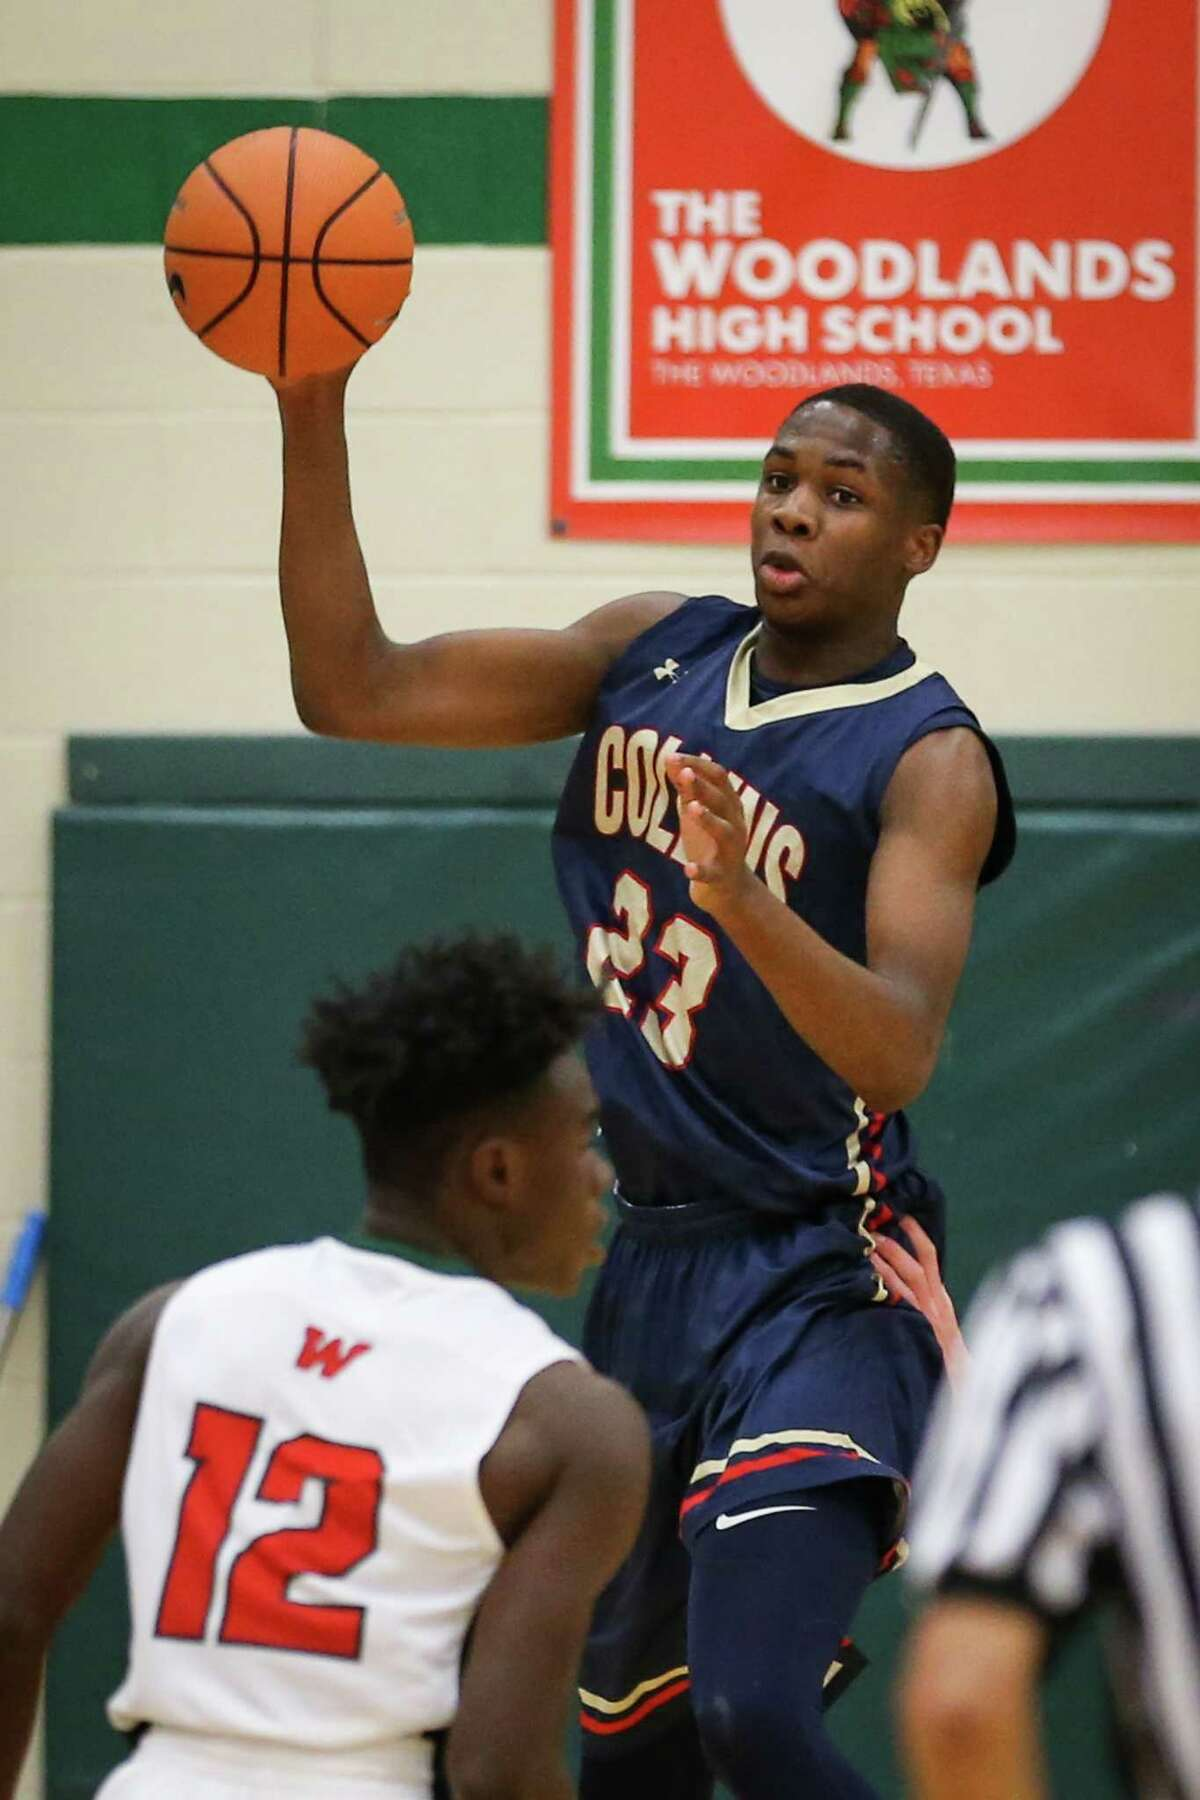 Klein Collins' Montaviou Murphy (23) catches a pass during the high school boys basketball game against The Woodlands on Monday, Dec. 4, 2017, at The Woodlands High School. (Michael Minasi / Houston Chronicle)